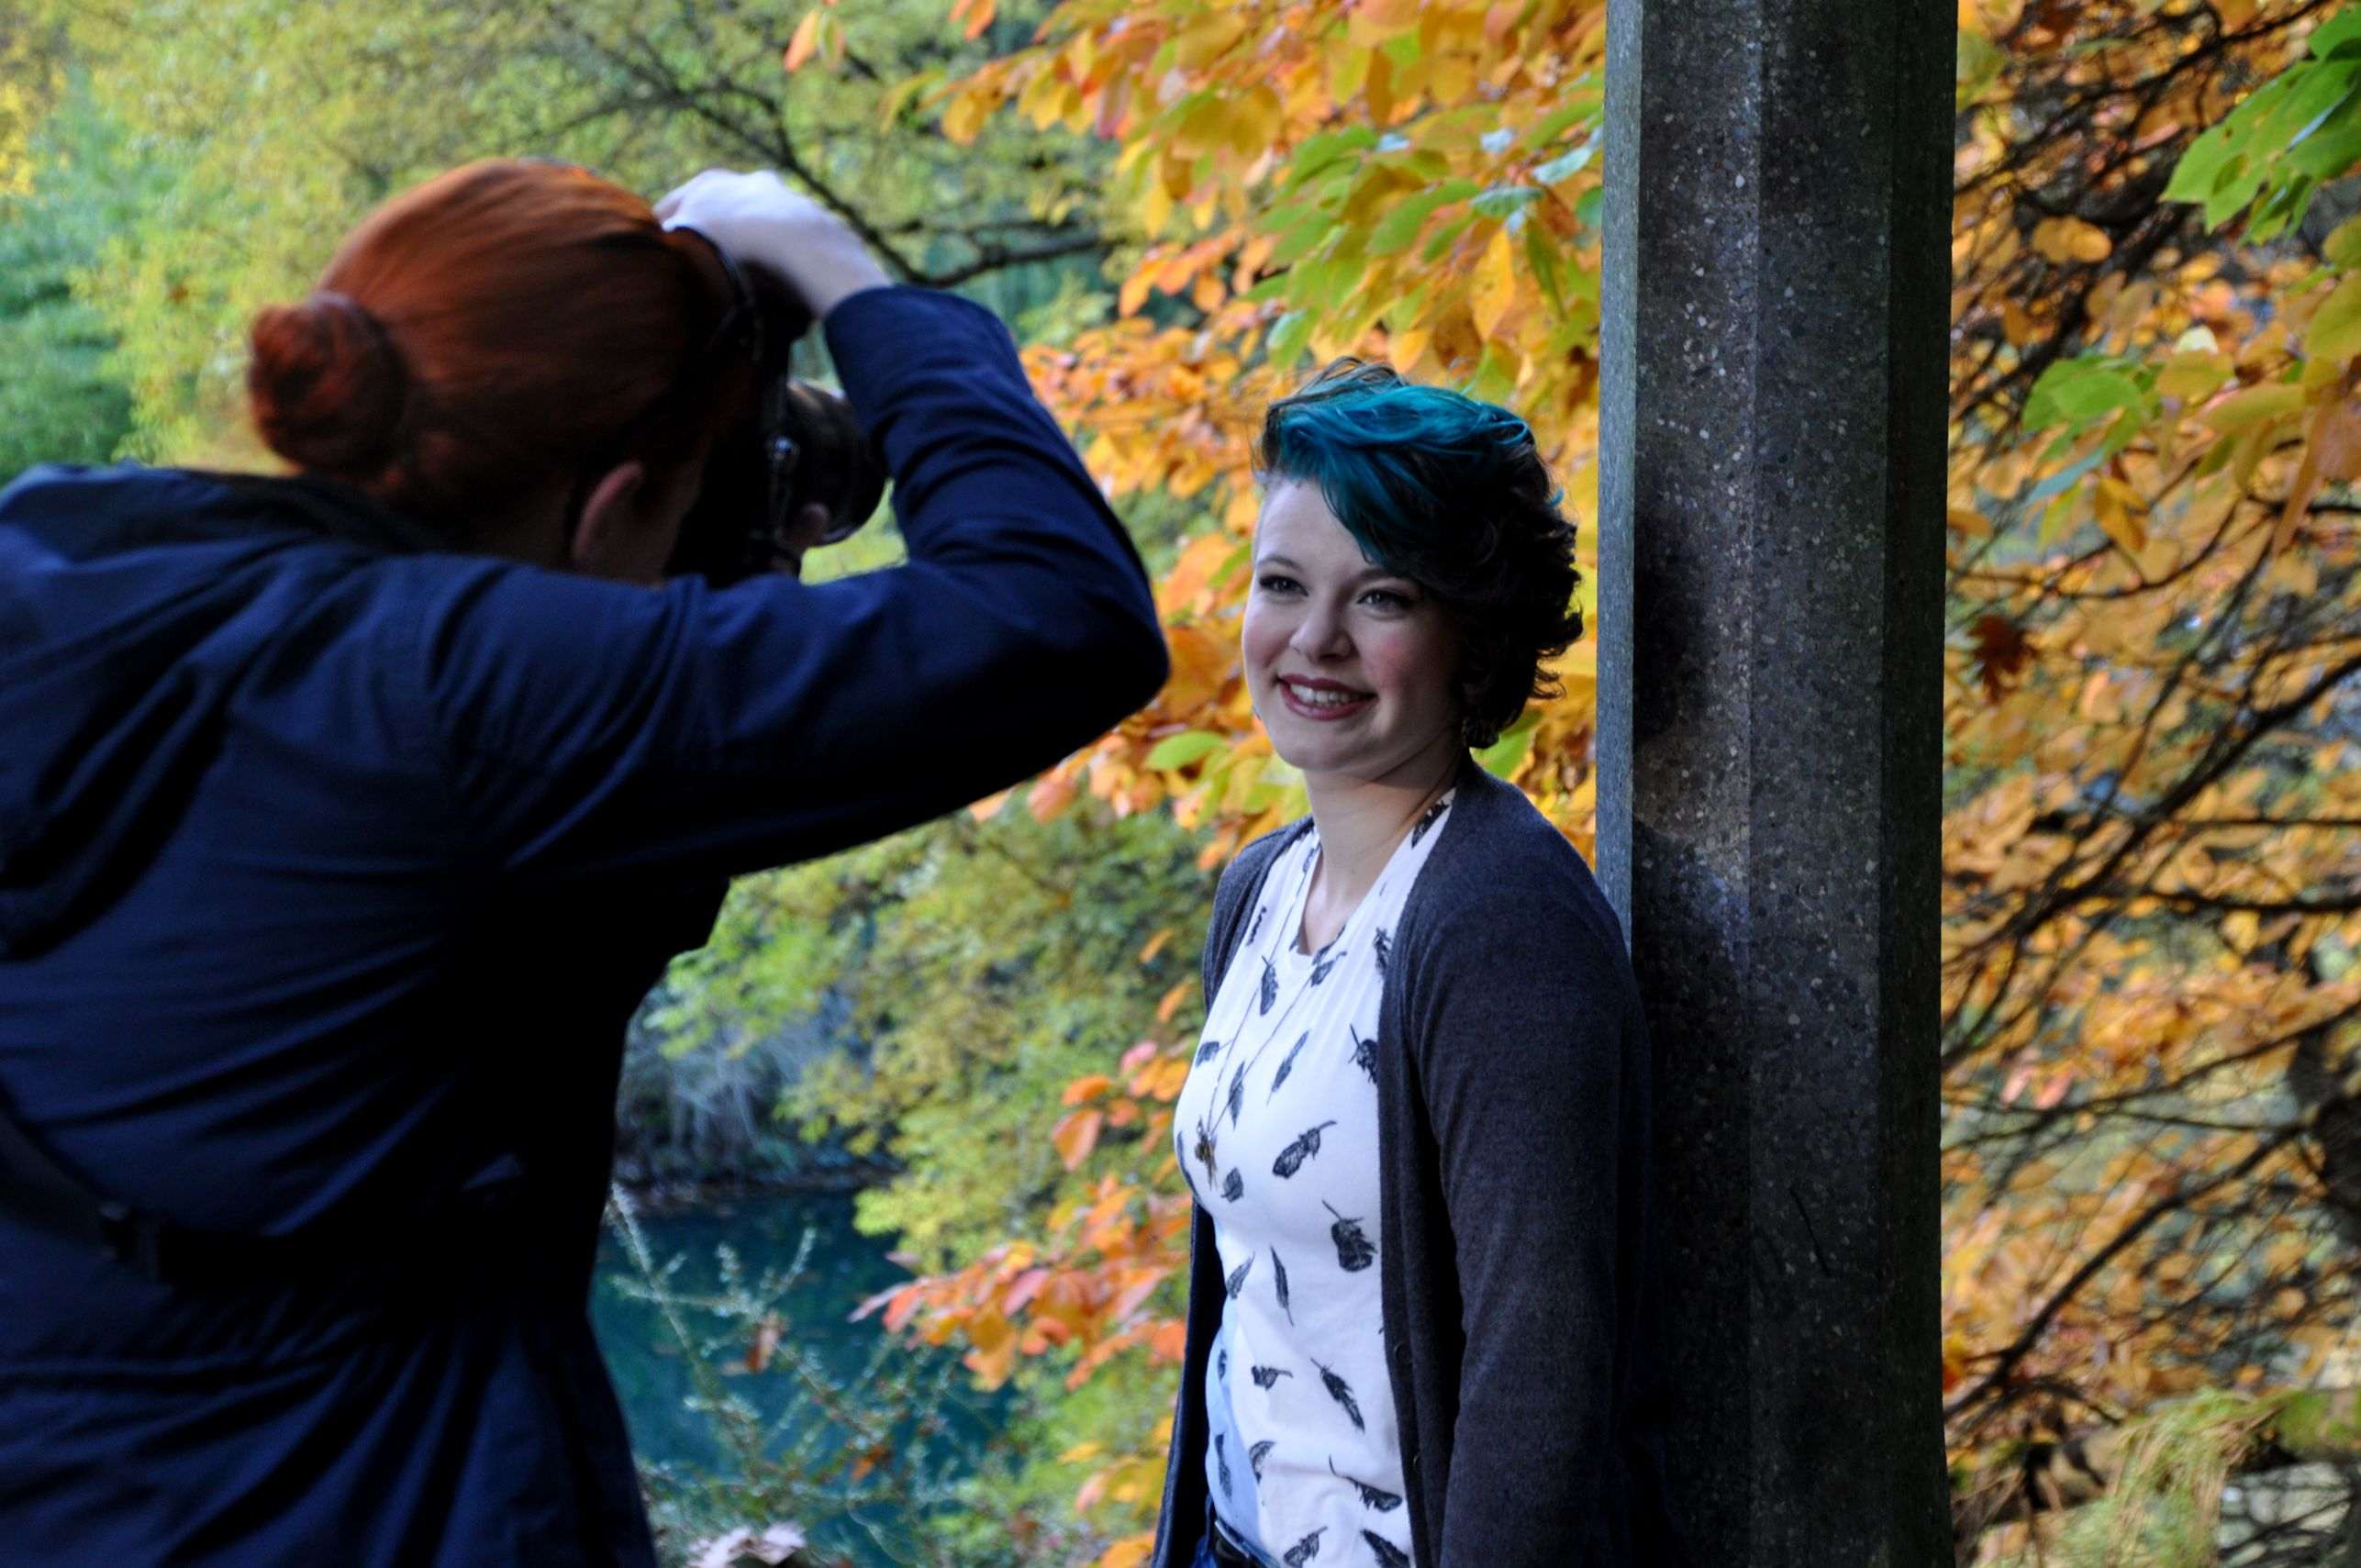 Tara hams it up for the first part of the shoot at Laurelhurst Park